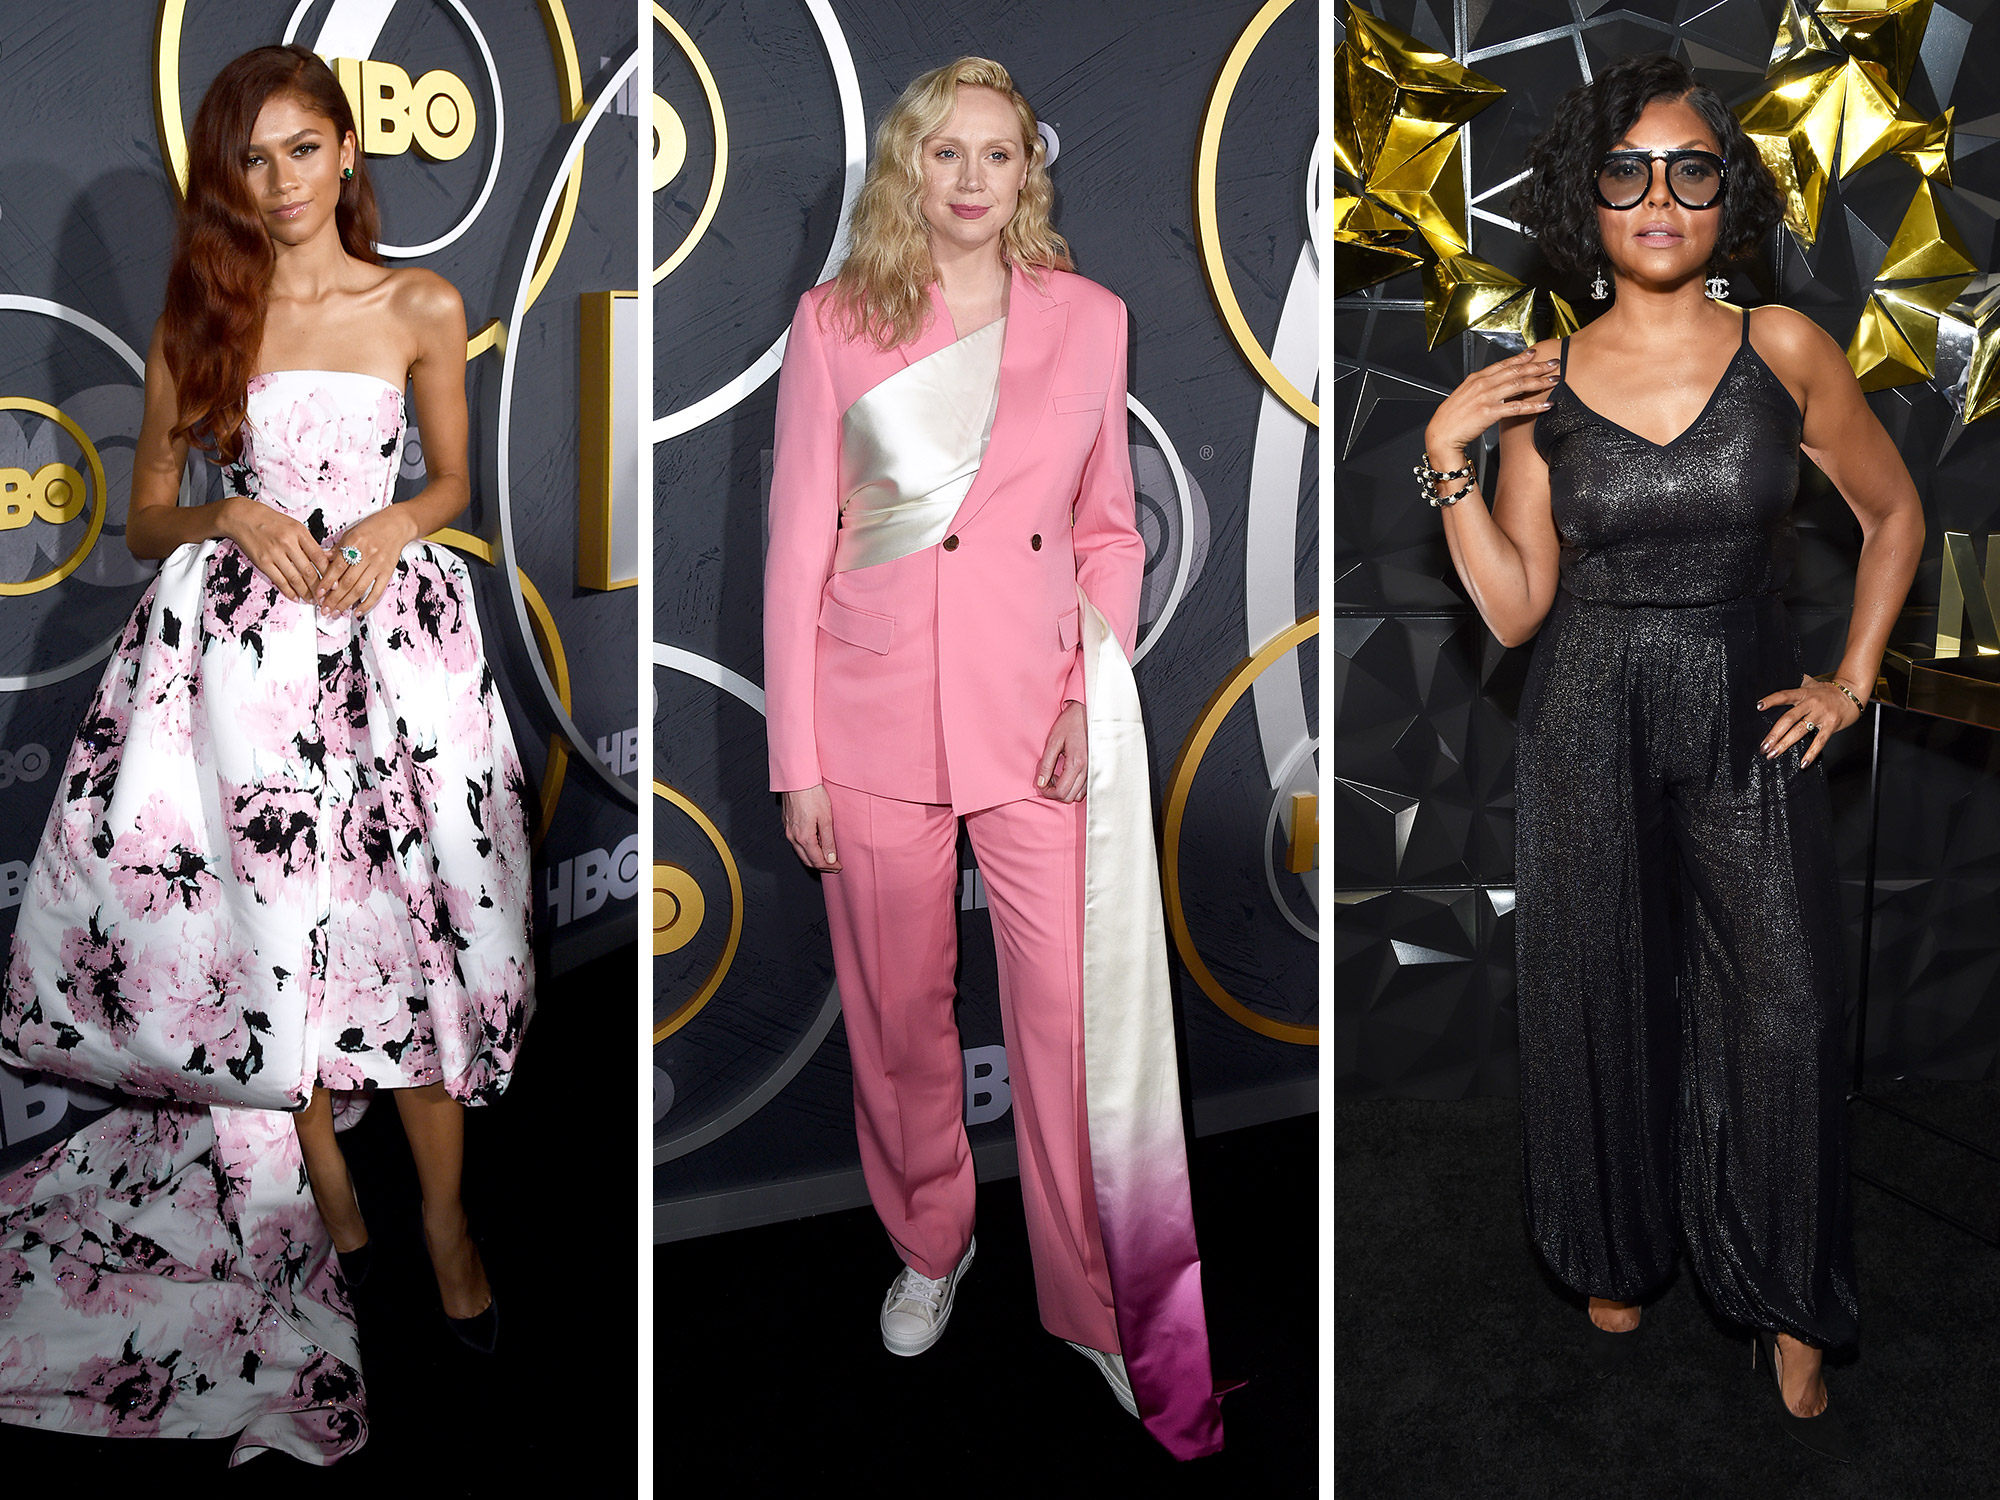 NEWS: The 2019 Emmys After-Party Looks Everyone's Going to Be Talking About